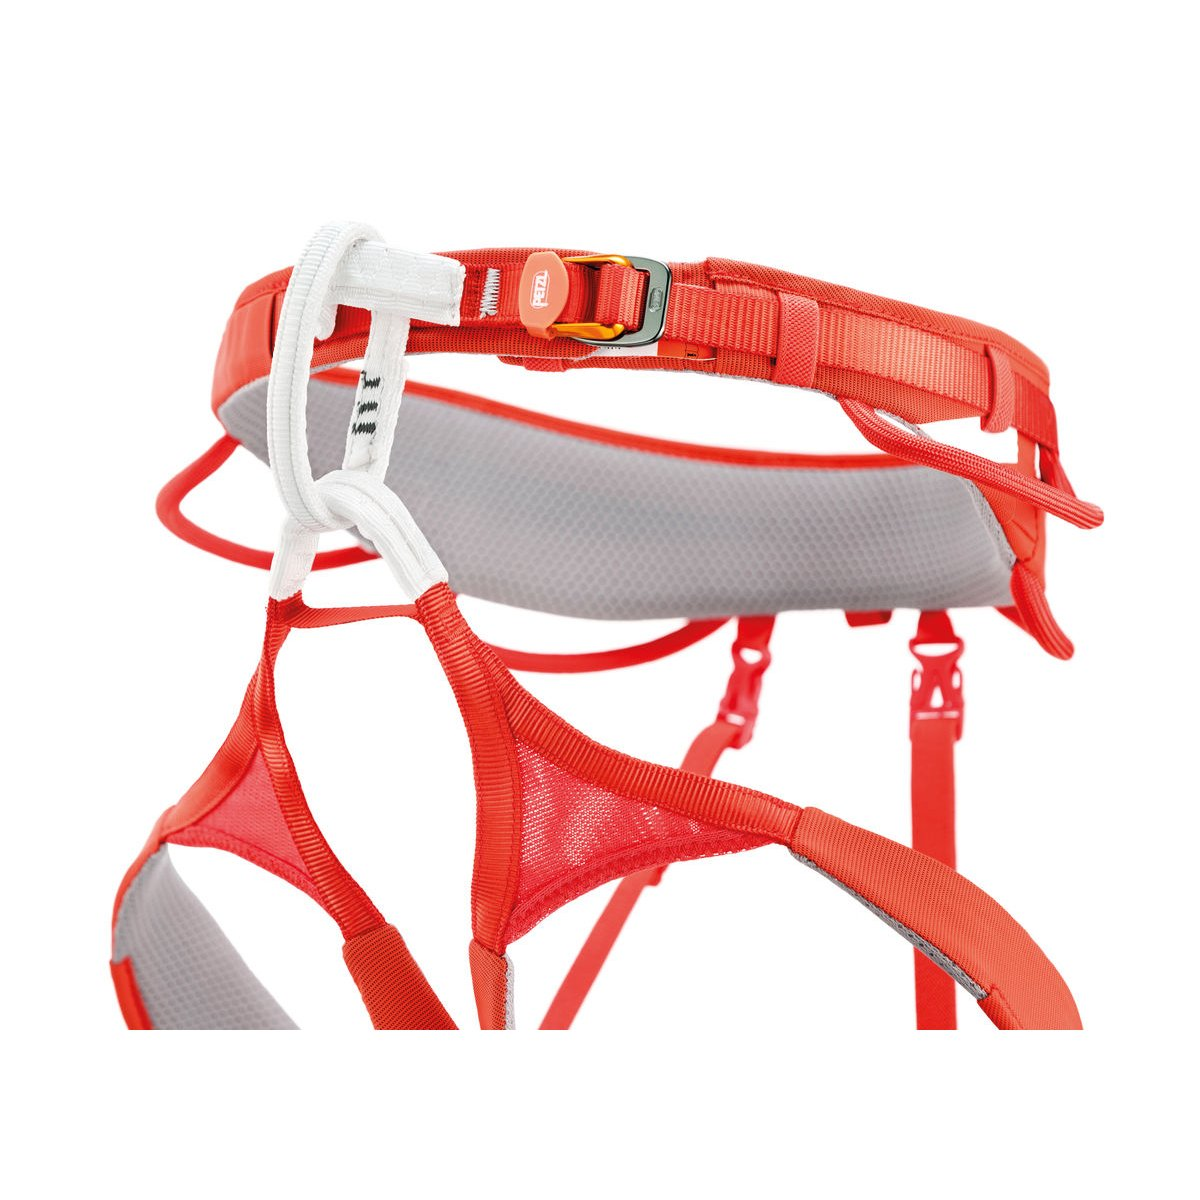 Petzl Hirundos Harness, front/side view